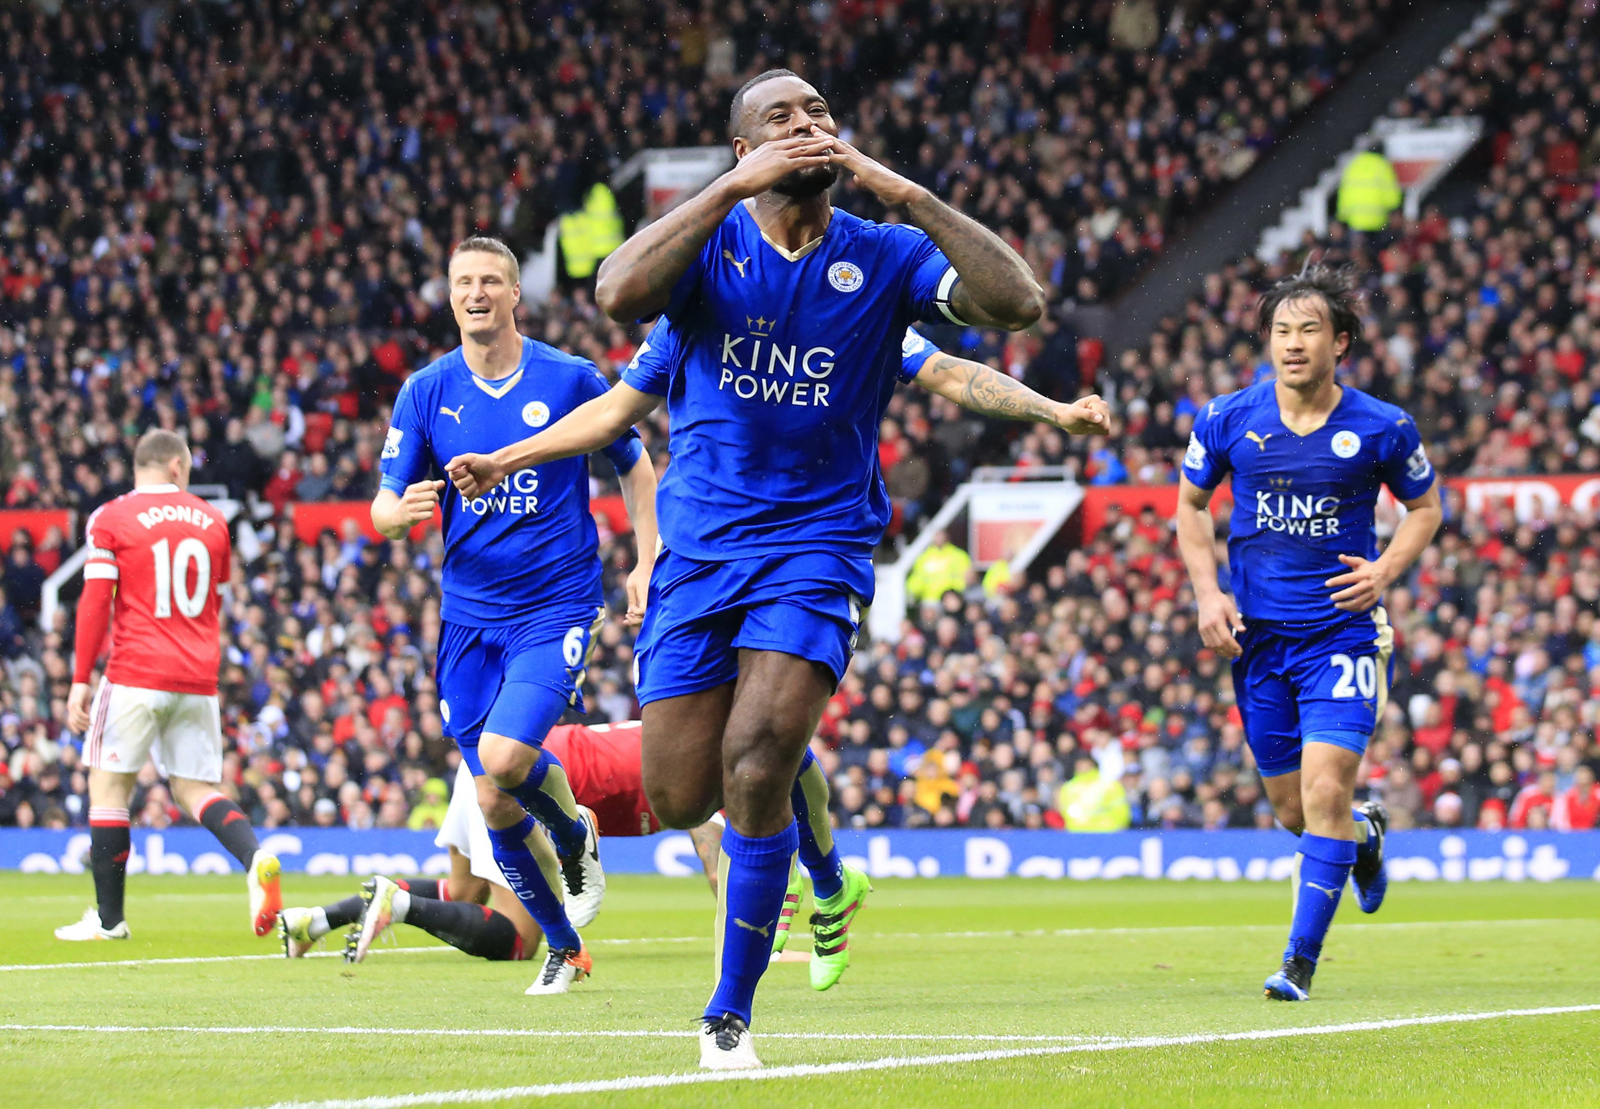 Dave's Take: Leicester City's underdogs win Premier League